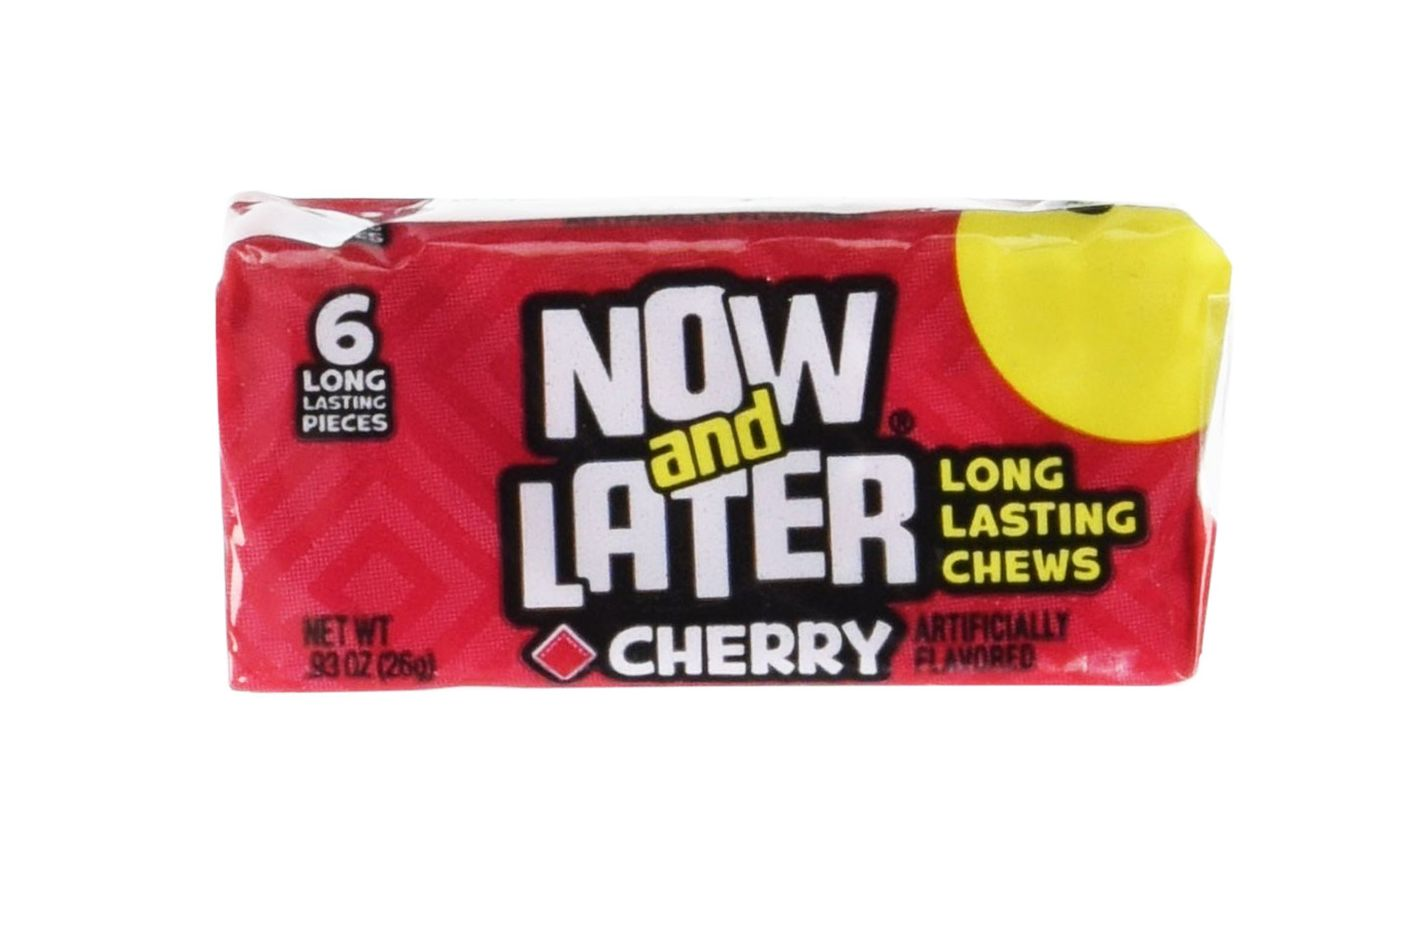 24 Pack of Now & Later Original Taffy Chews Candy, Cherry